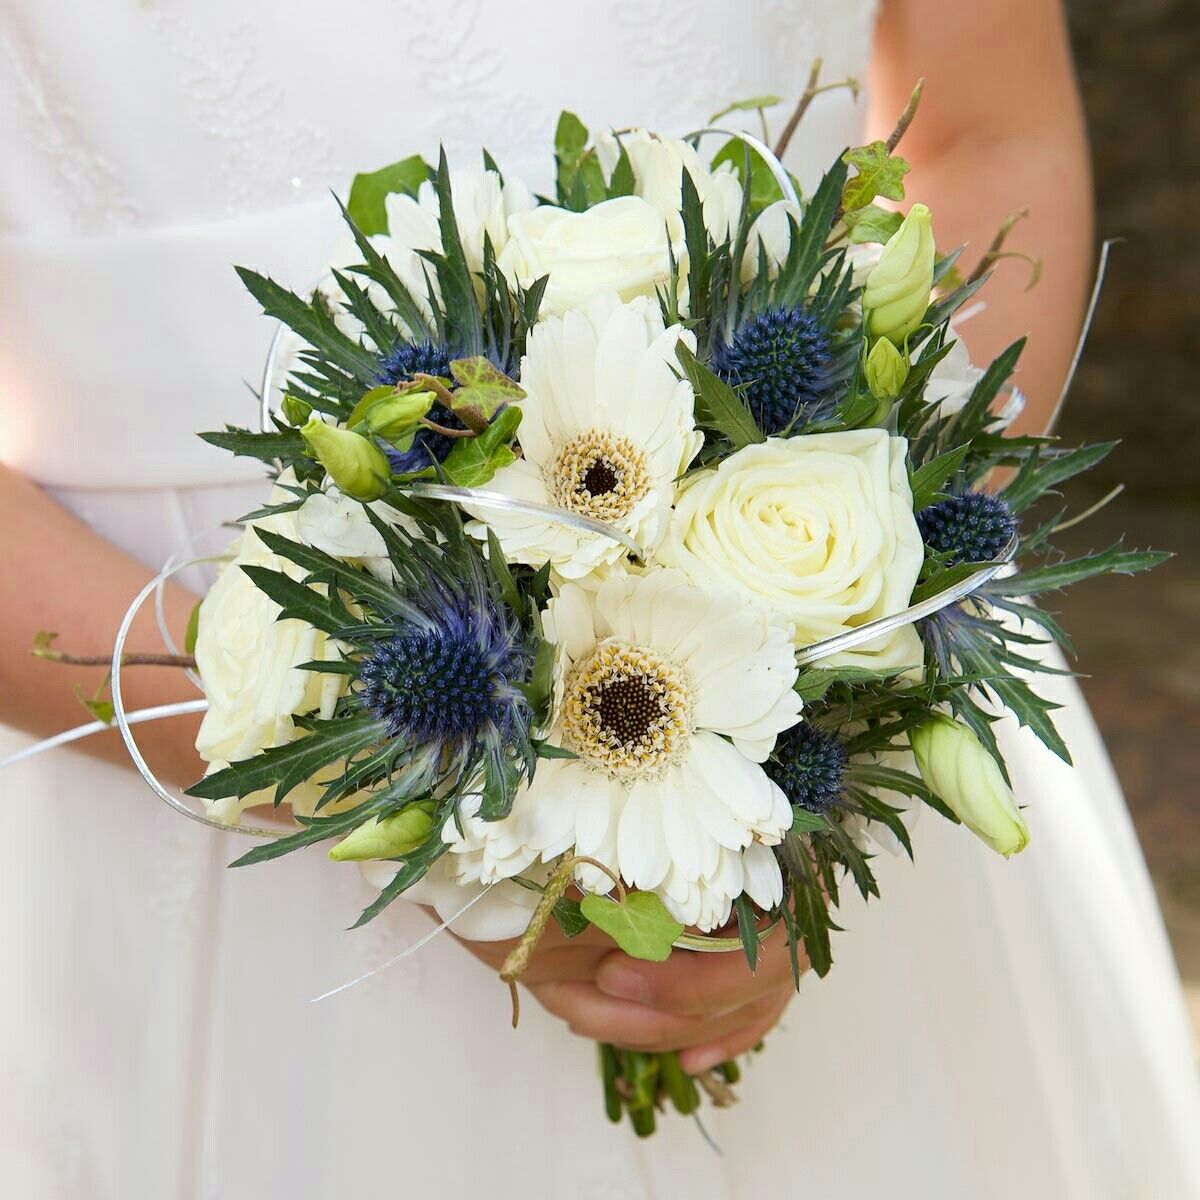 White Gerbera Daisies Roses Lisianthus Buds Blue Eryngium Thistle Wedding Bouquet